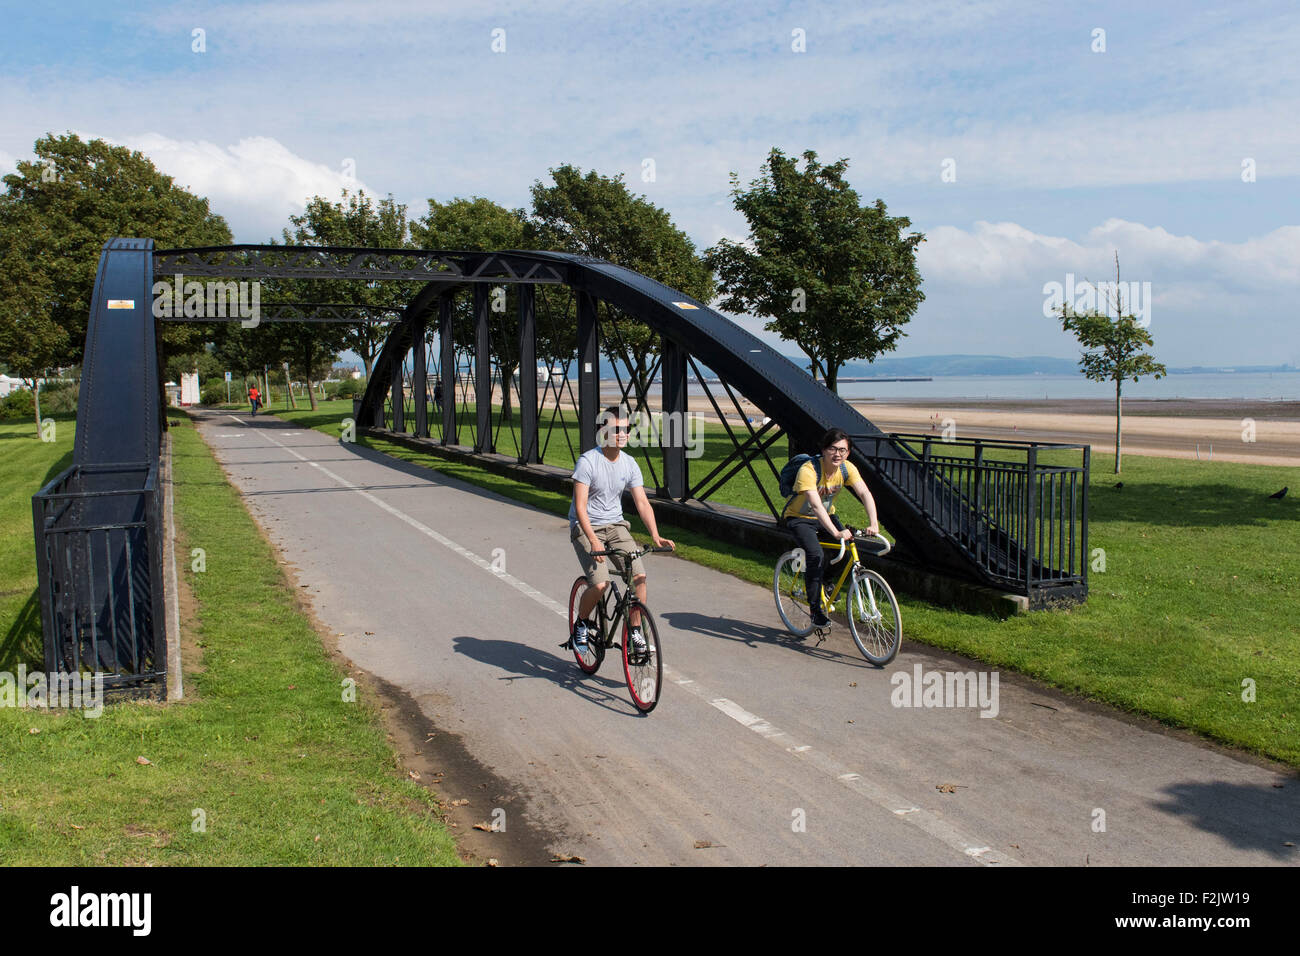 Cyclists cycle in a cycle lane along the Swansea beach promenade in Swansea, South Wales. - Stock Image